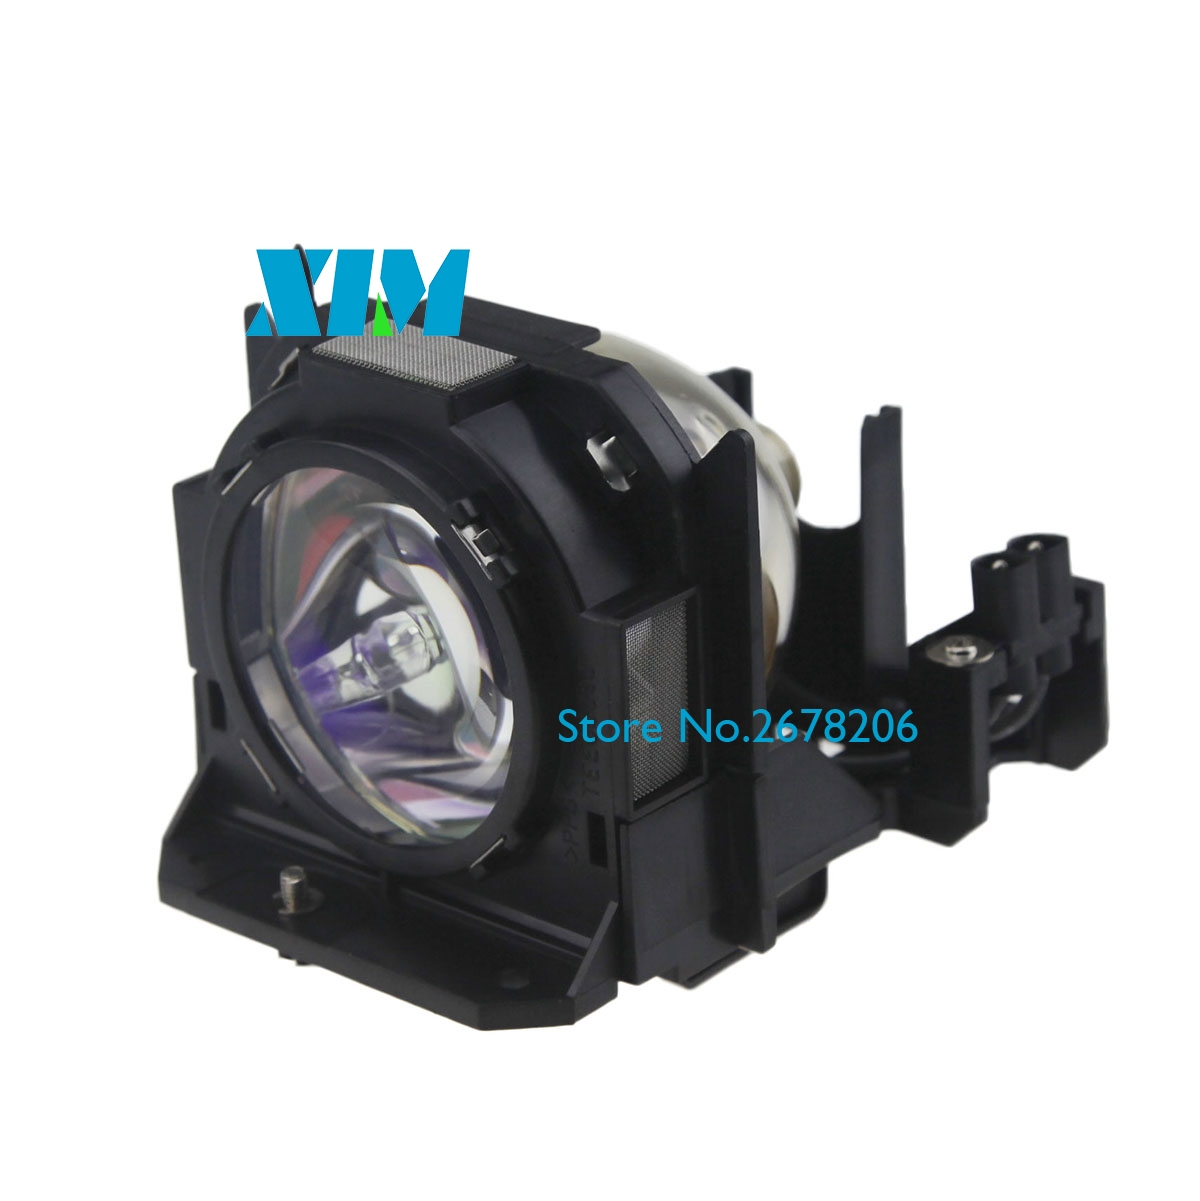 ET-LAD60W - Lamp With Housing For Panasonic PT-DZ570U,PT-DW6300US,PT-DZ6700U,PT-DZ6710U,PT-D6000US,PT-DW6300ULS,PT-DW6300<br>